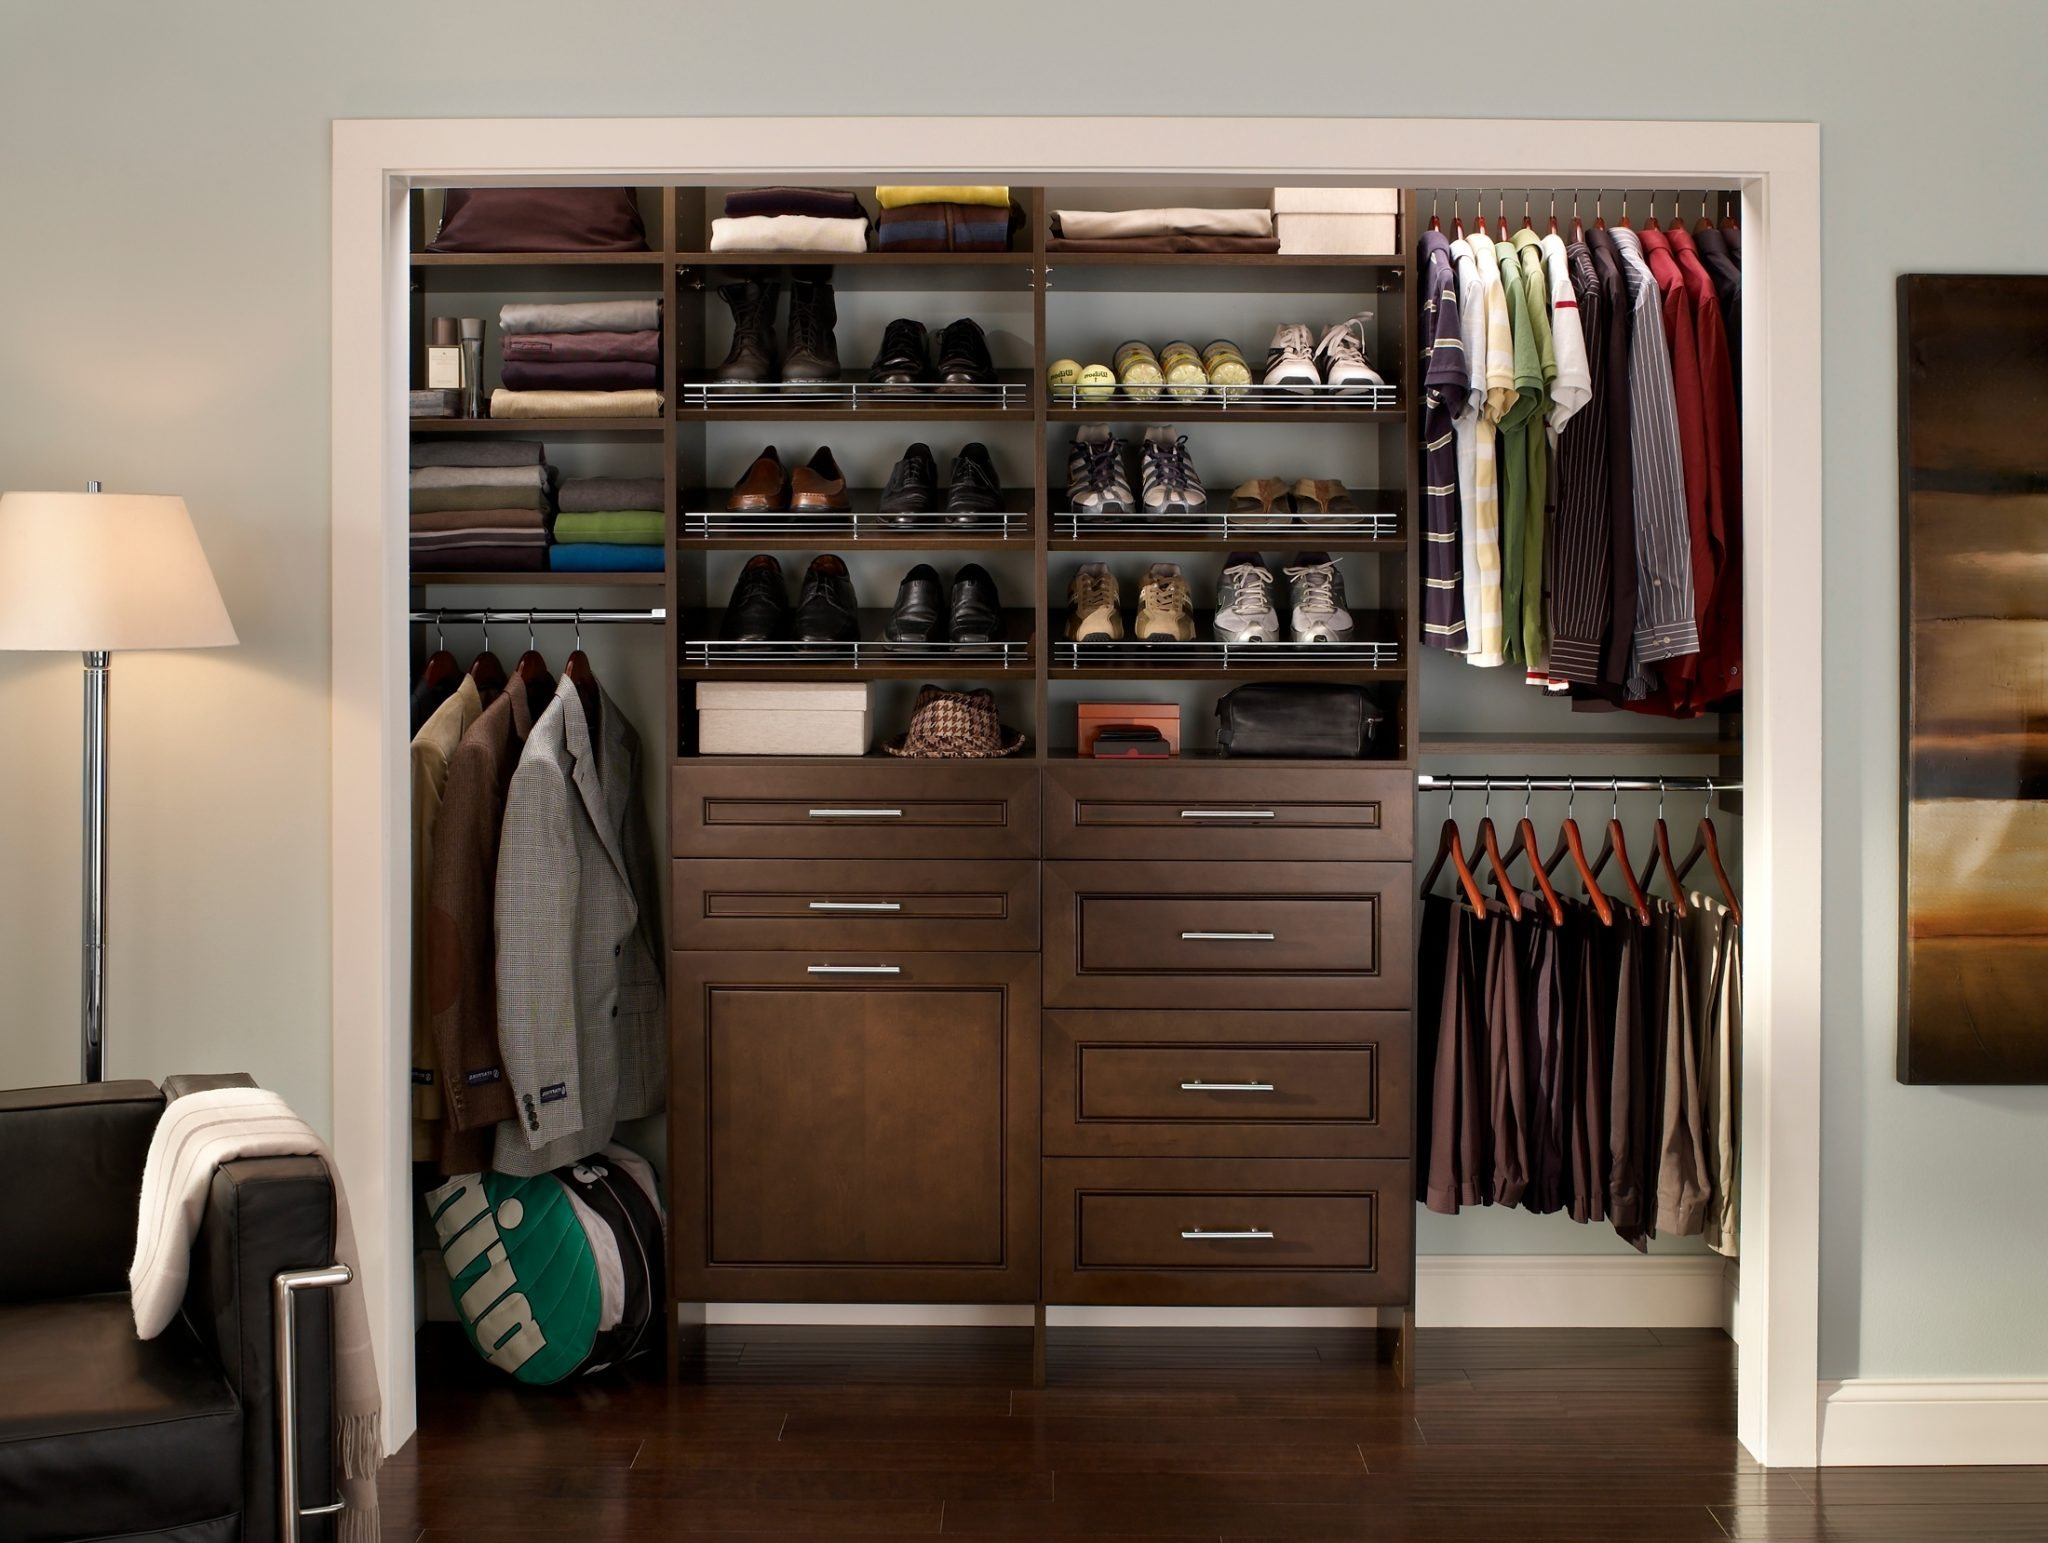 Plastic Shelving Lowes | Closet Shelving Units Lowes | Lowes Wire Shelving